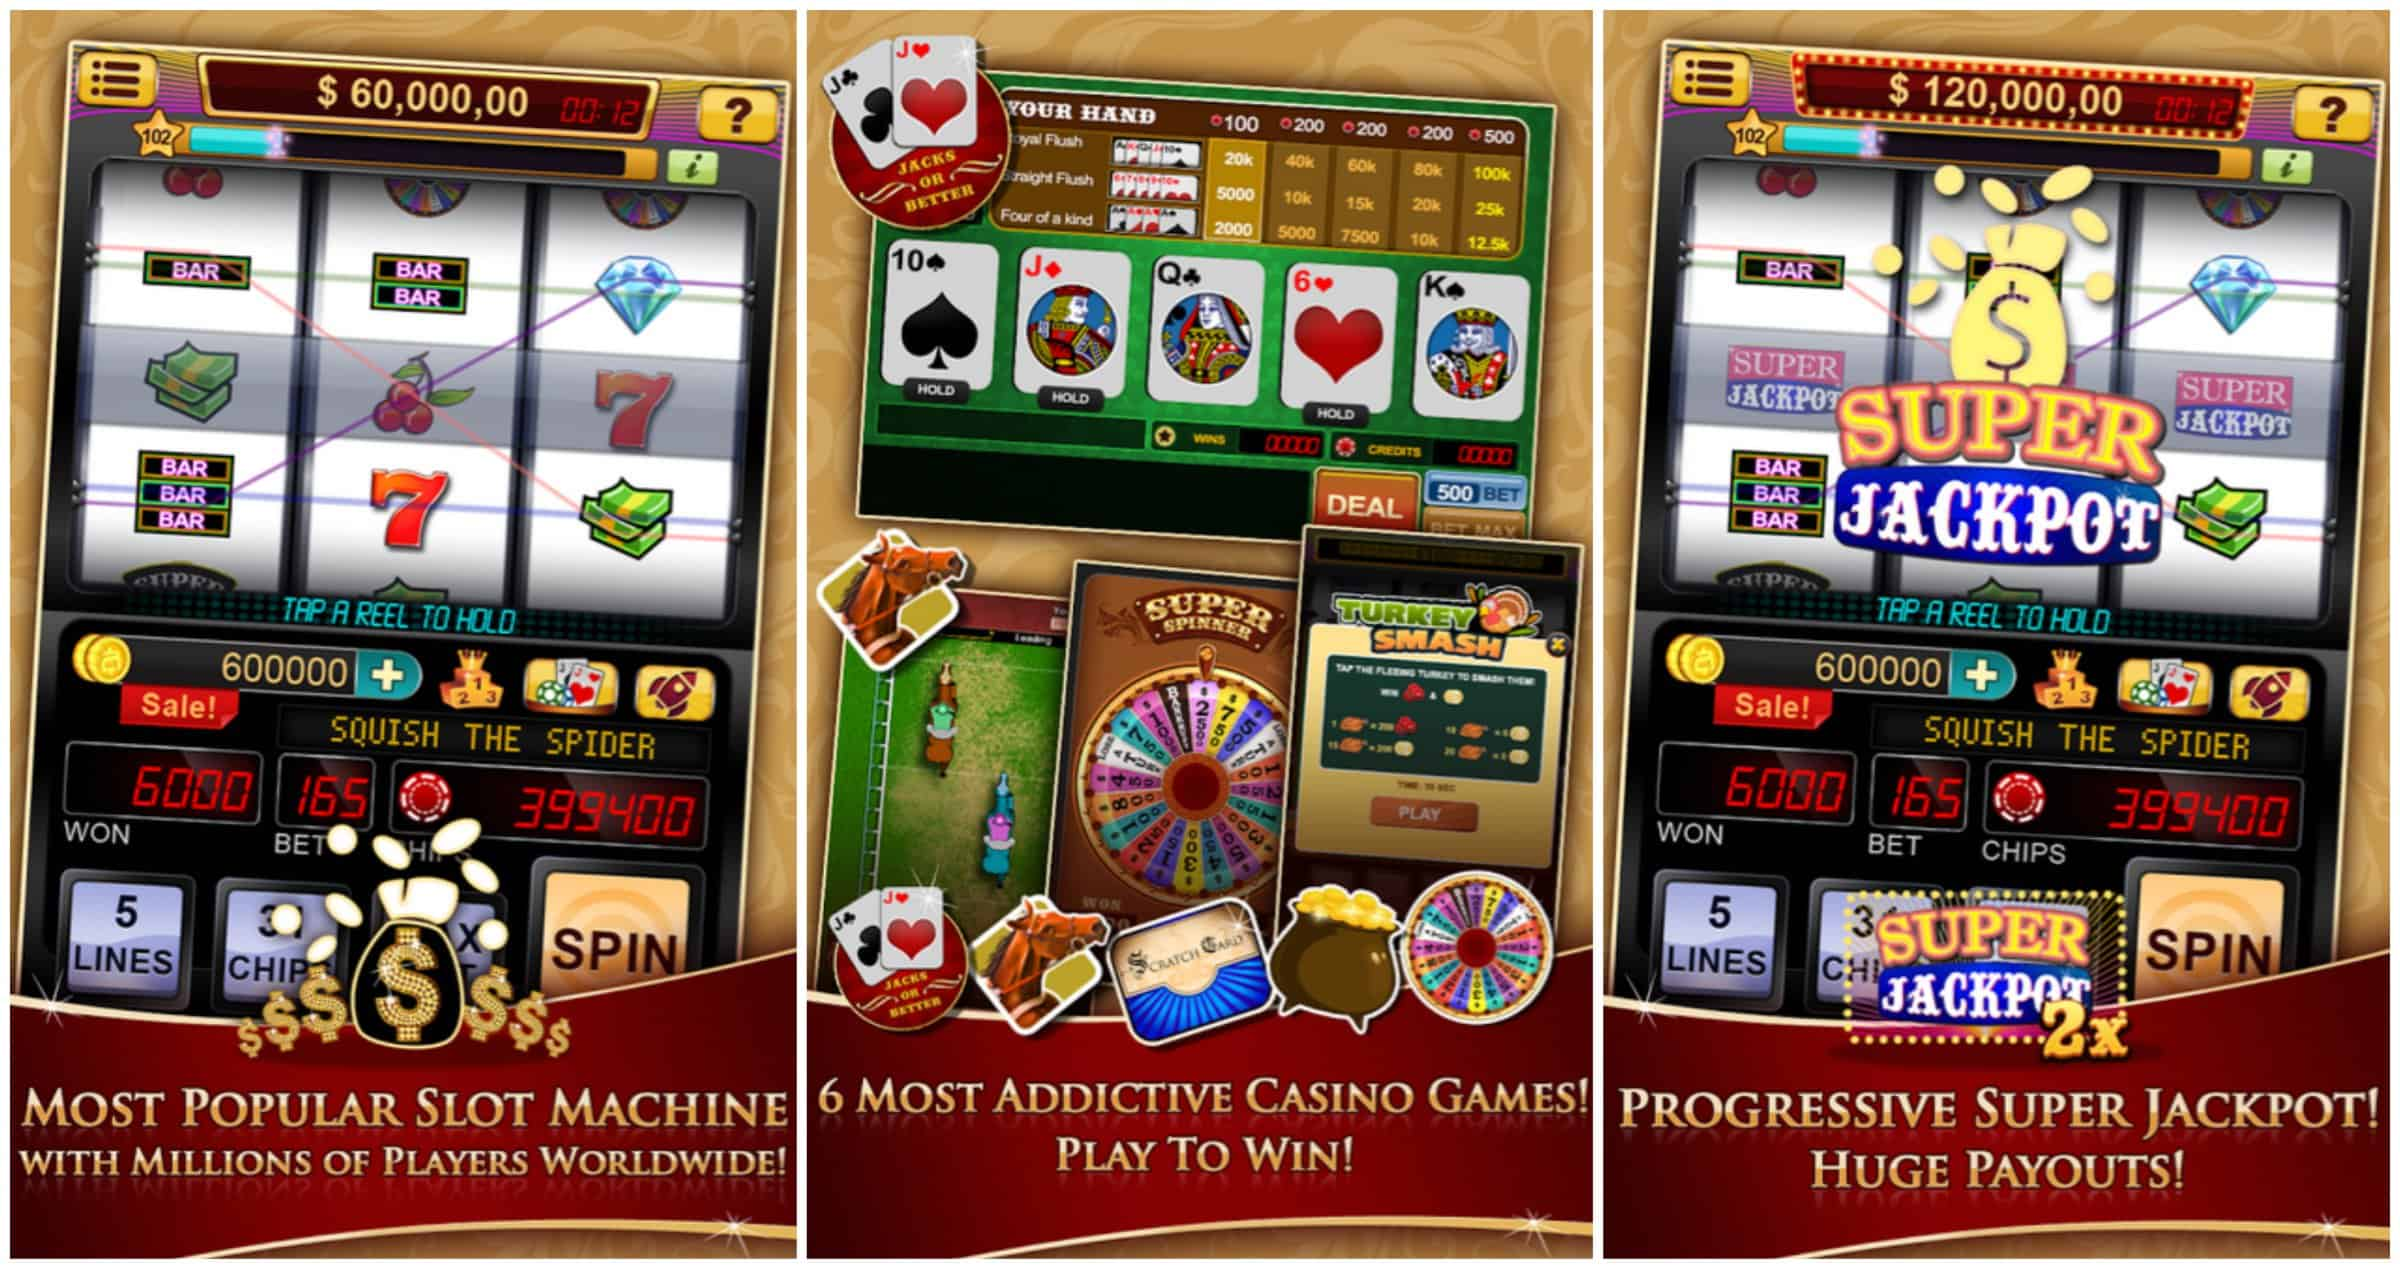 best slot machine app for android 2015